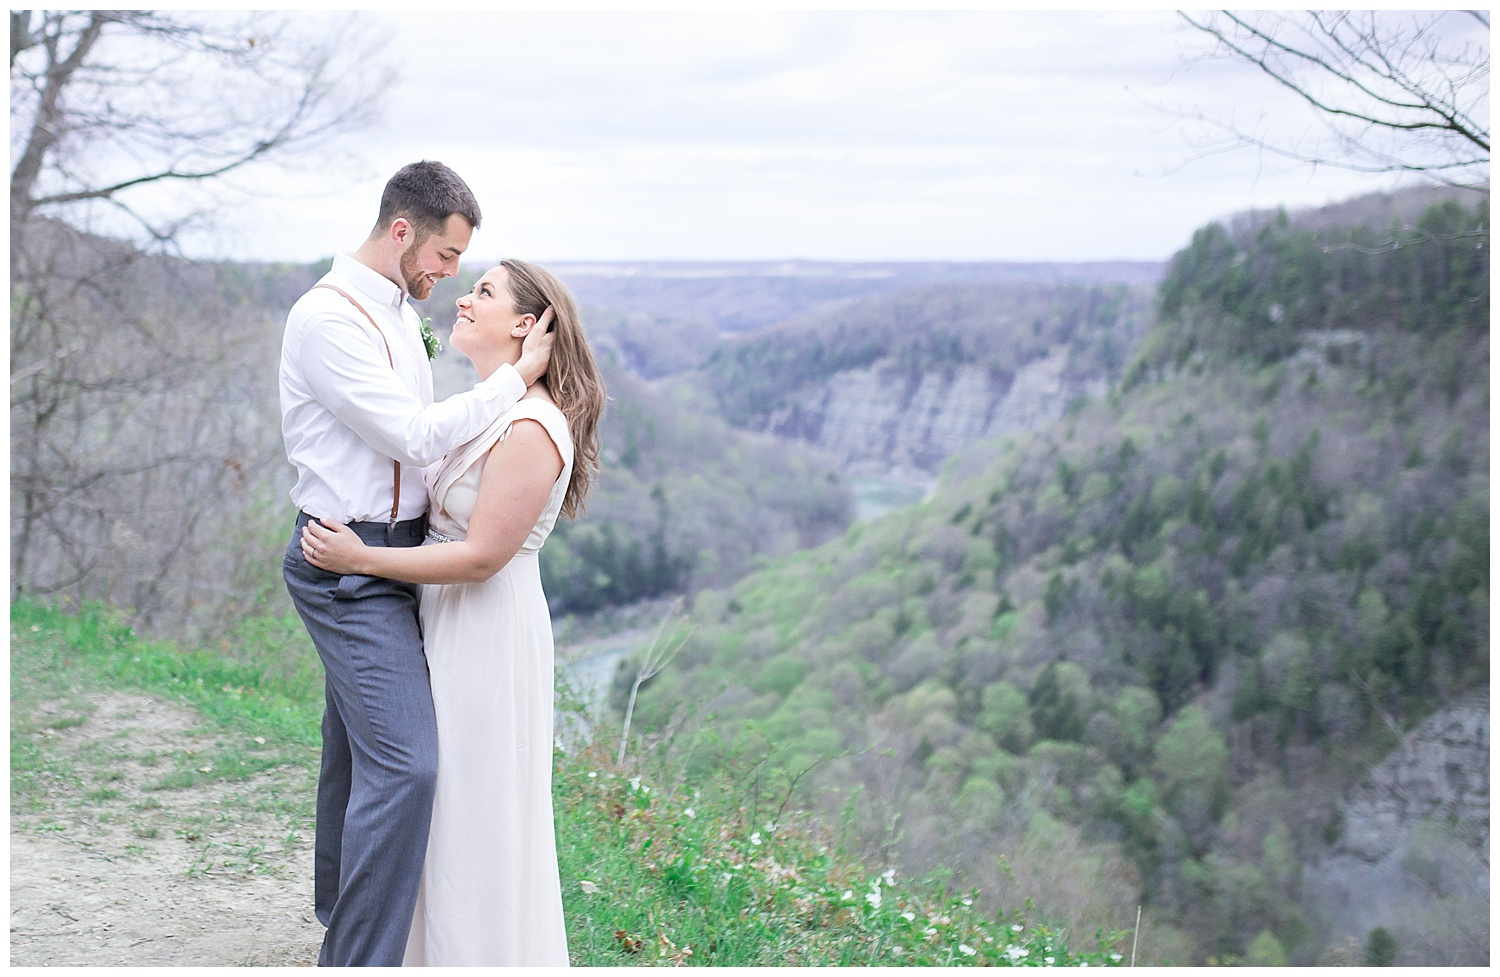 Letchworth state park wedding - whimsical boho romance - rochester lass and beau 91.jpg